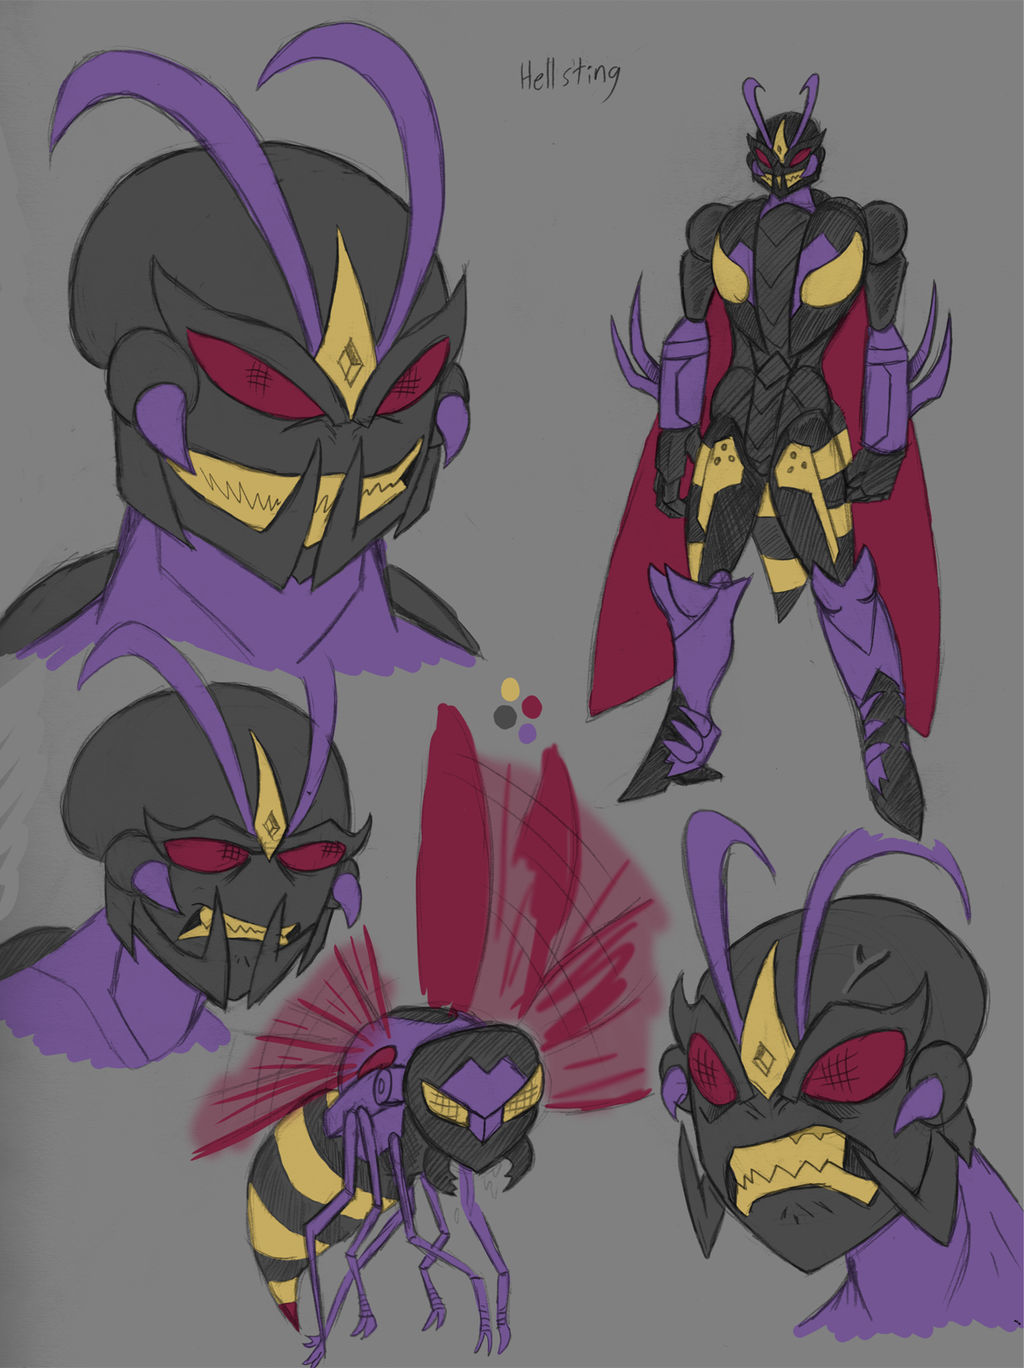 Transformers Wasps: Hellsting by Transypoo